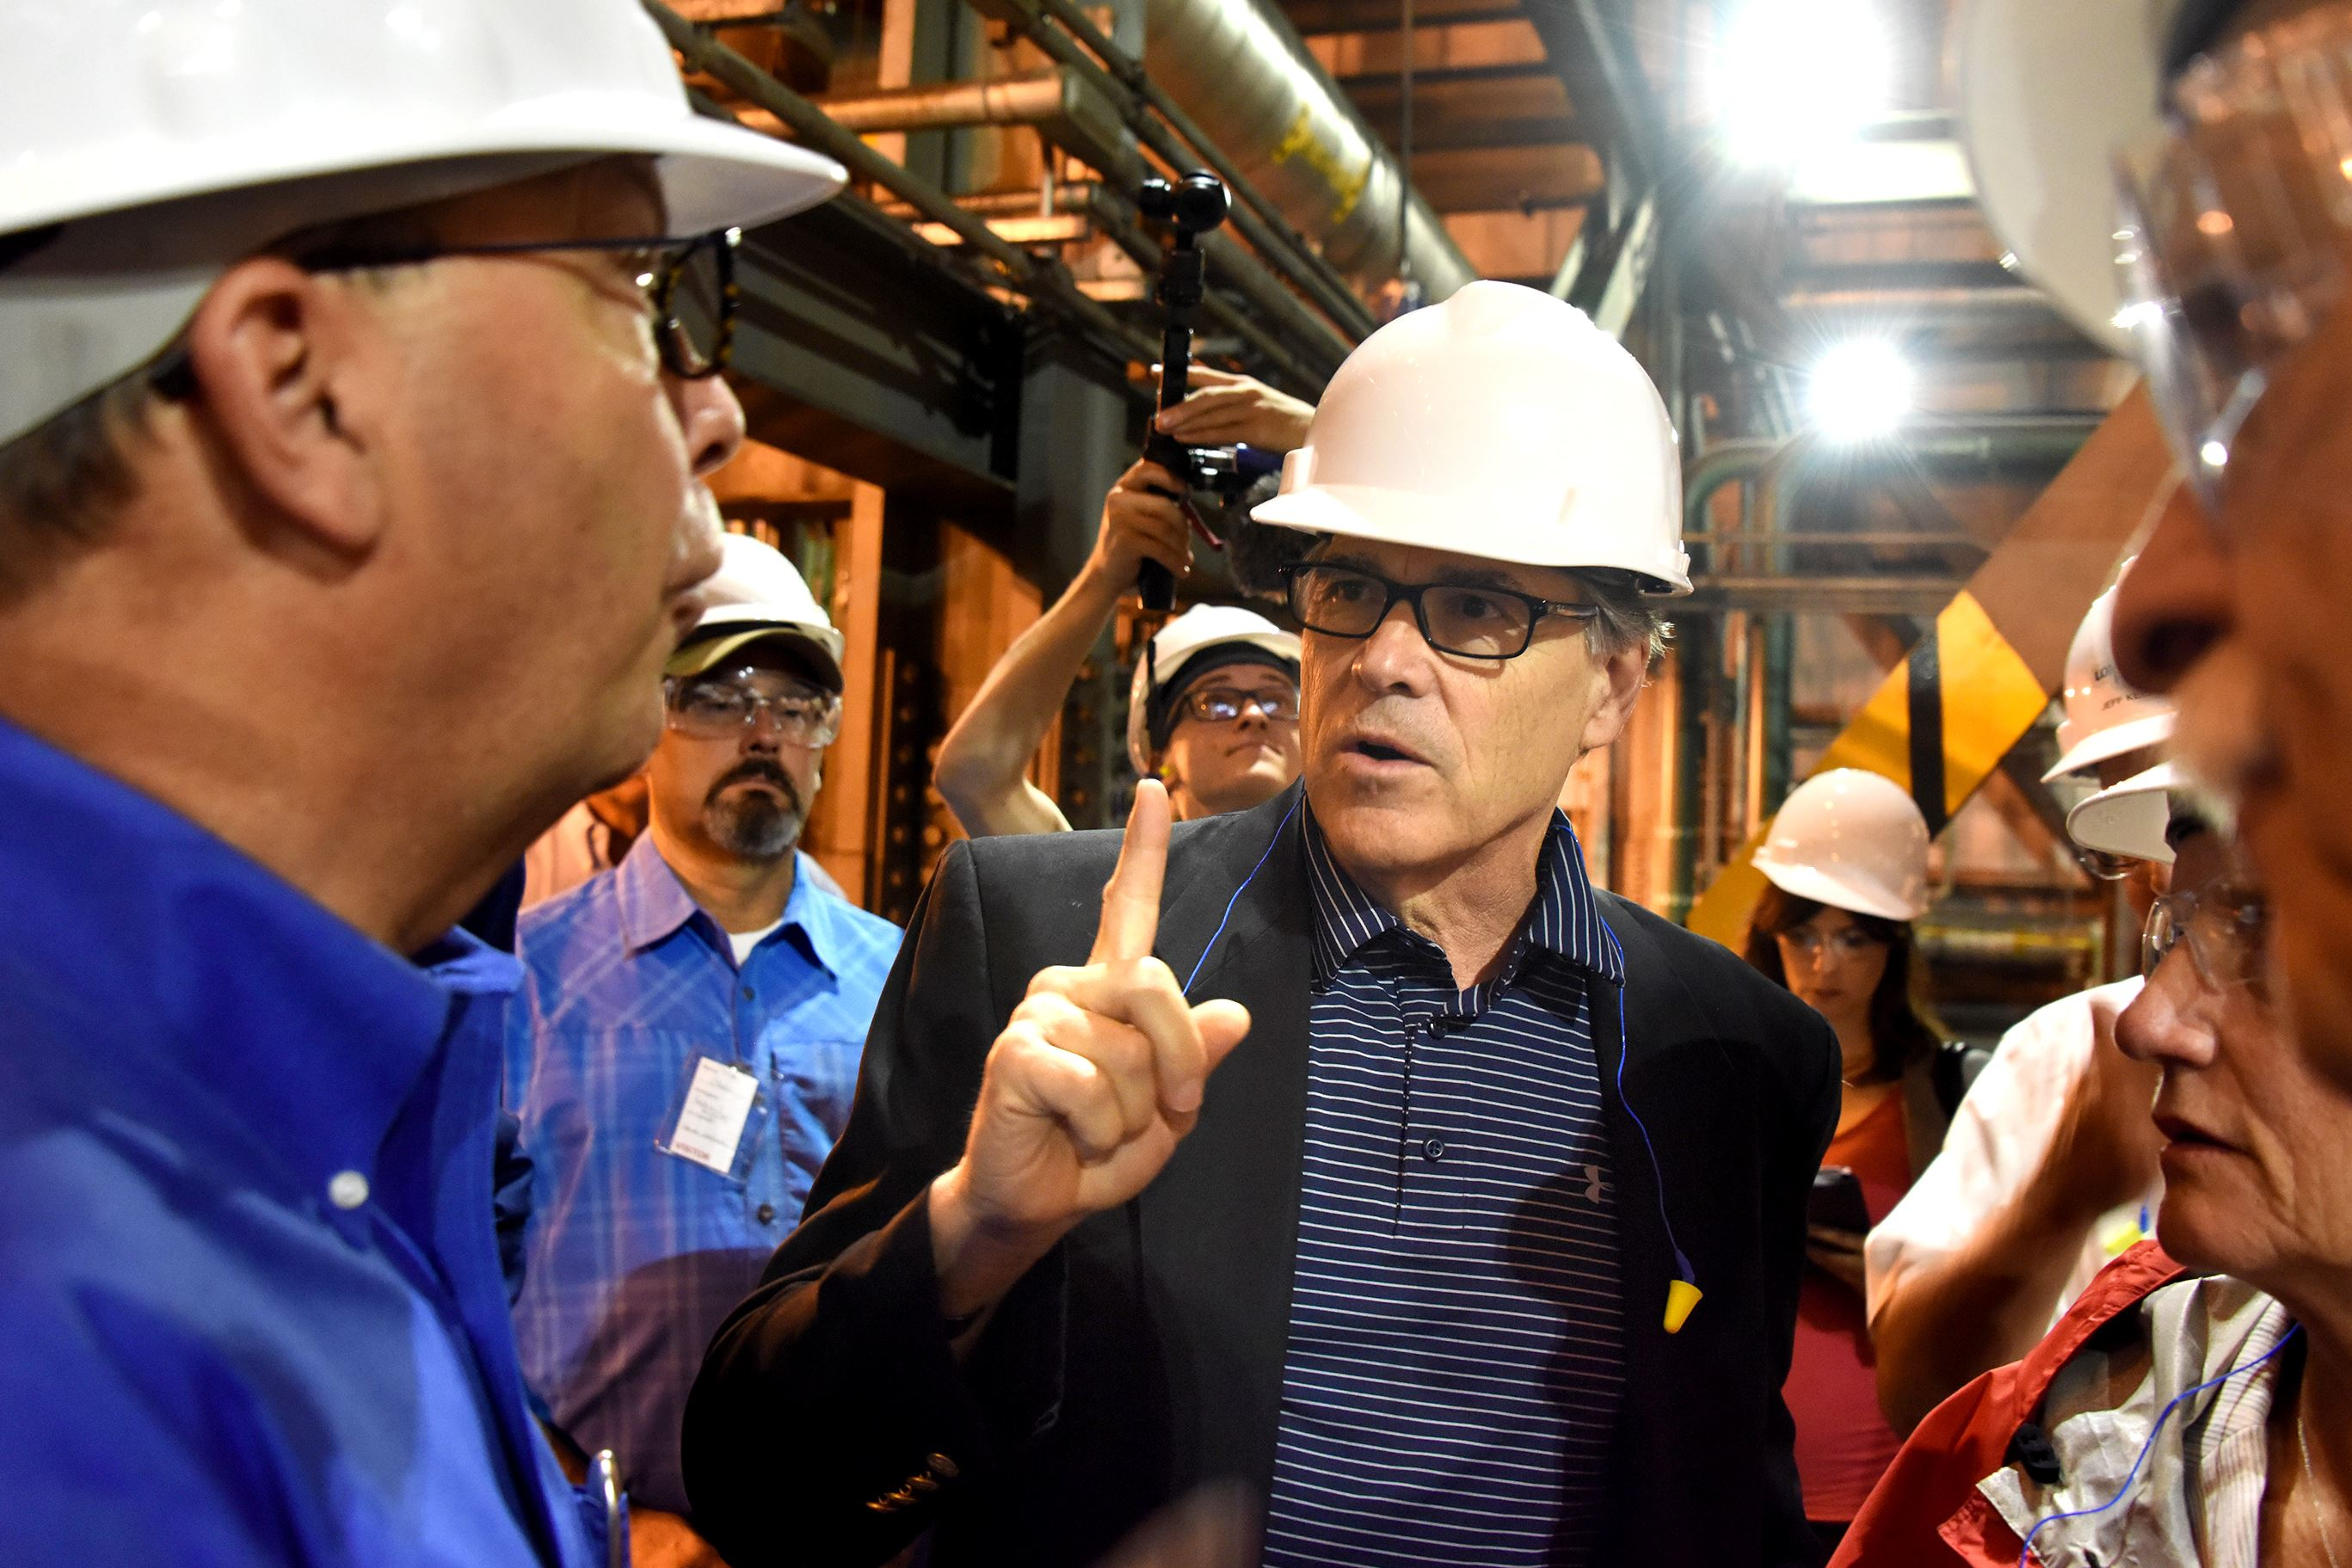 Sec. of Energy Rick Perry Energy Secretary Rick Perry talks with Steve Nelson, chief operating officer at the Longview Power Plant, as they tour the turbine building near Morgantown, West Virginia on Thursday.